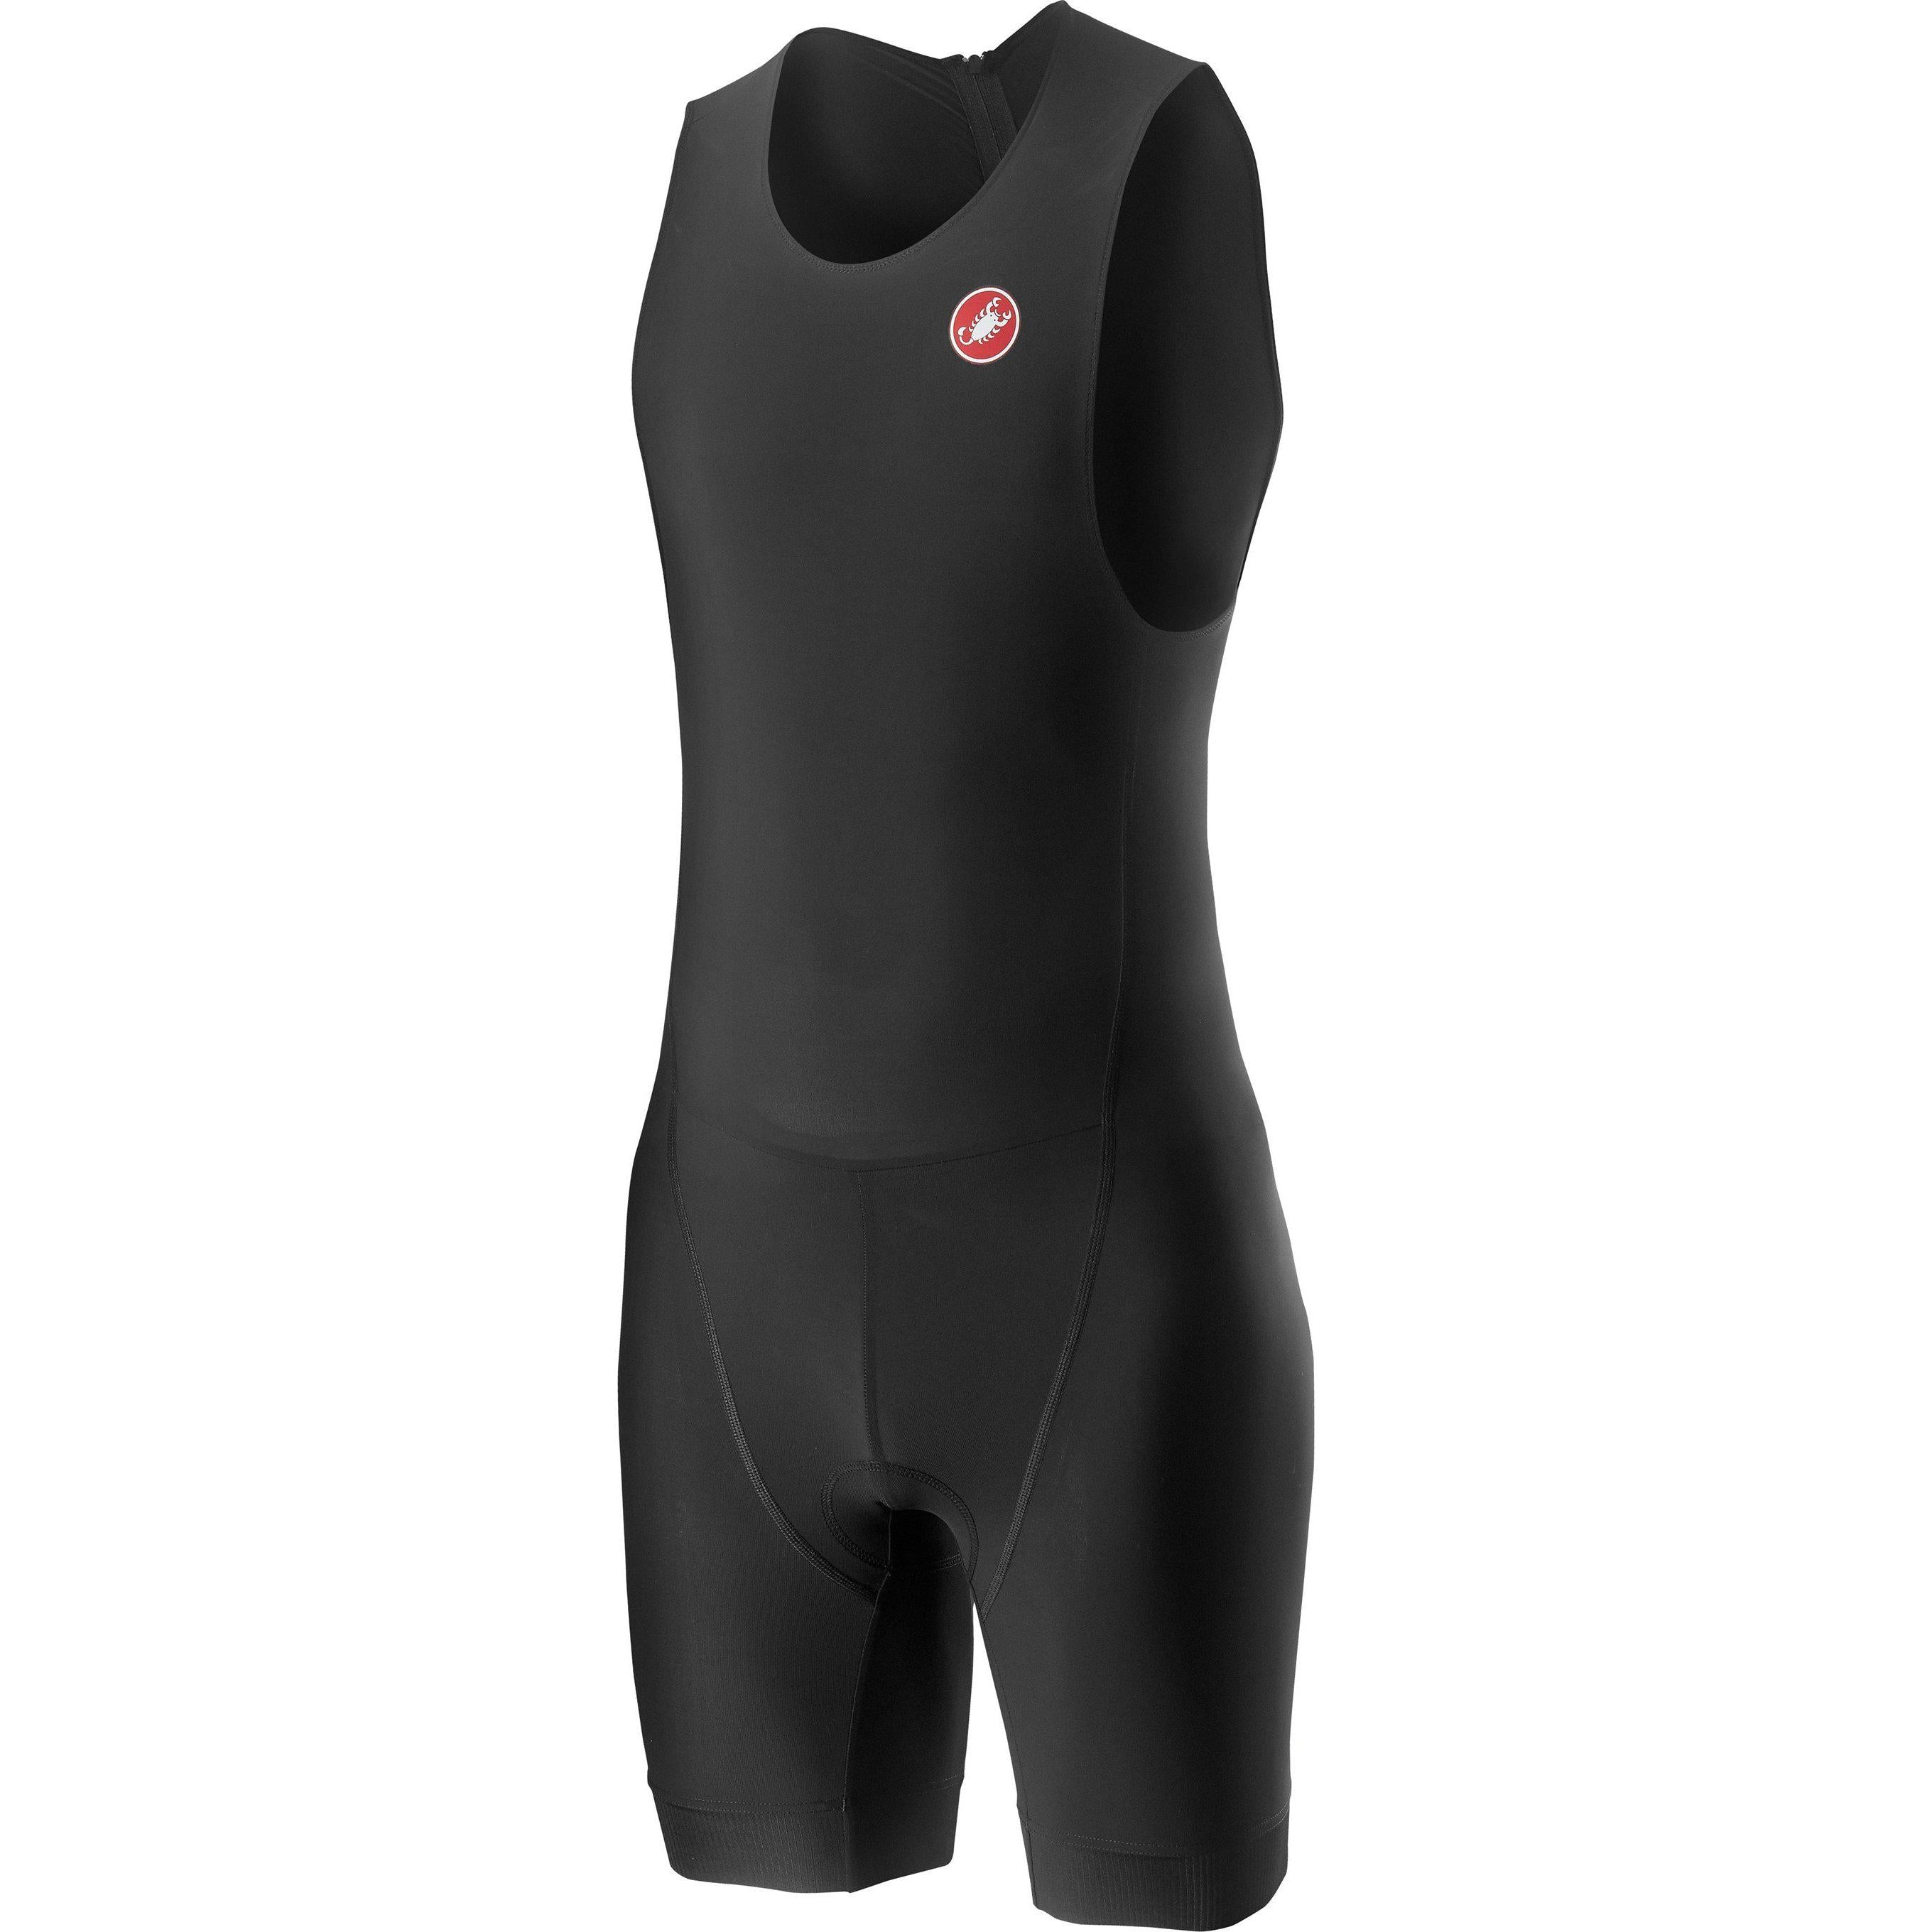 Castelli-Castelli Core Spr-Oly Suit-Black-S-CS200940102-saddleback-elite-performance-cycling